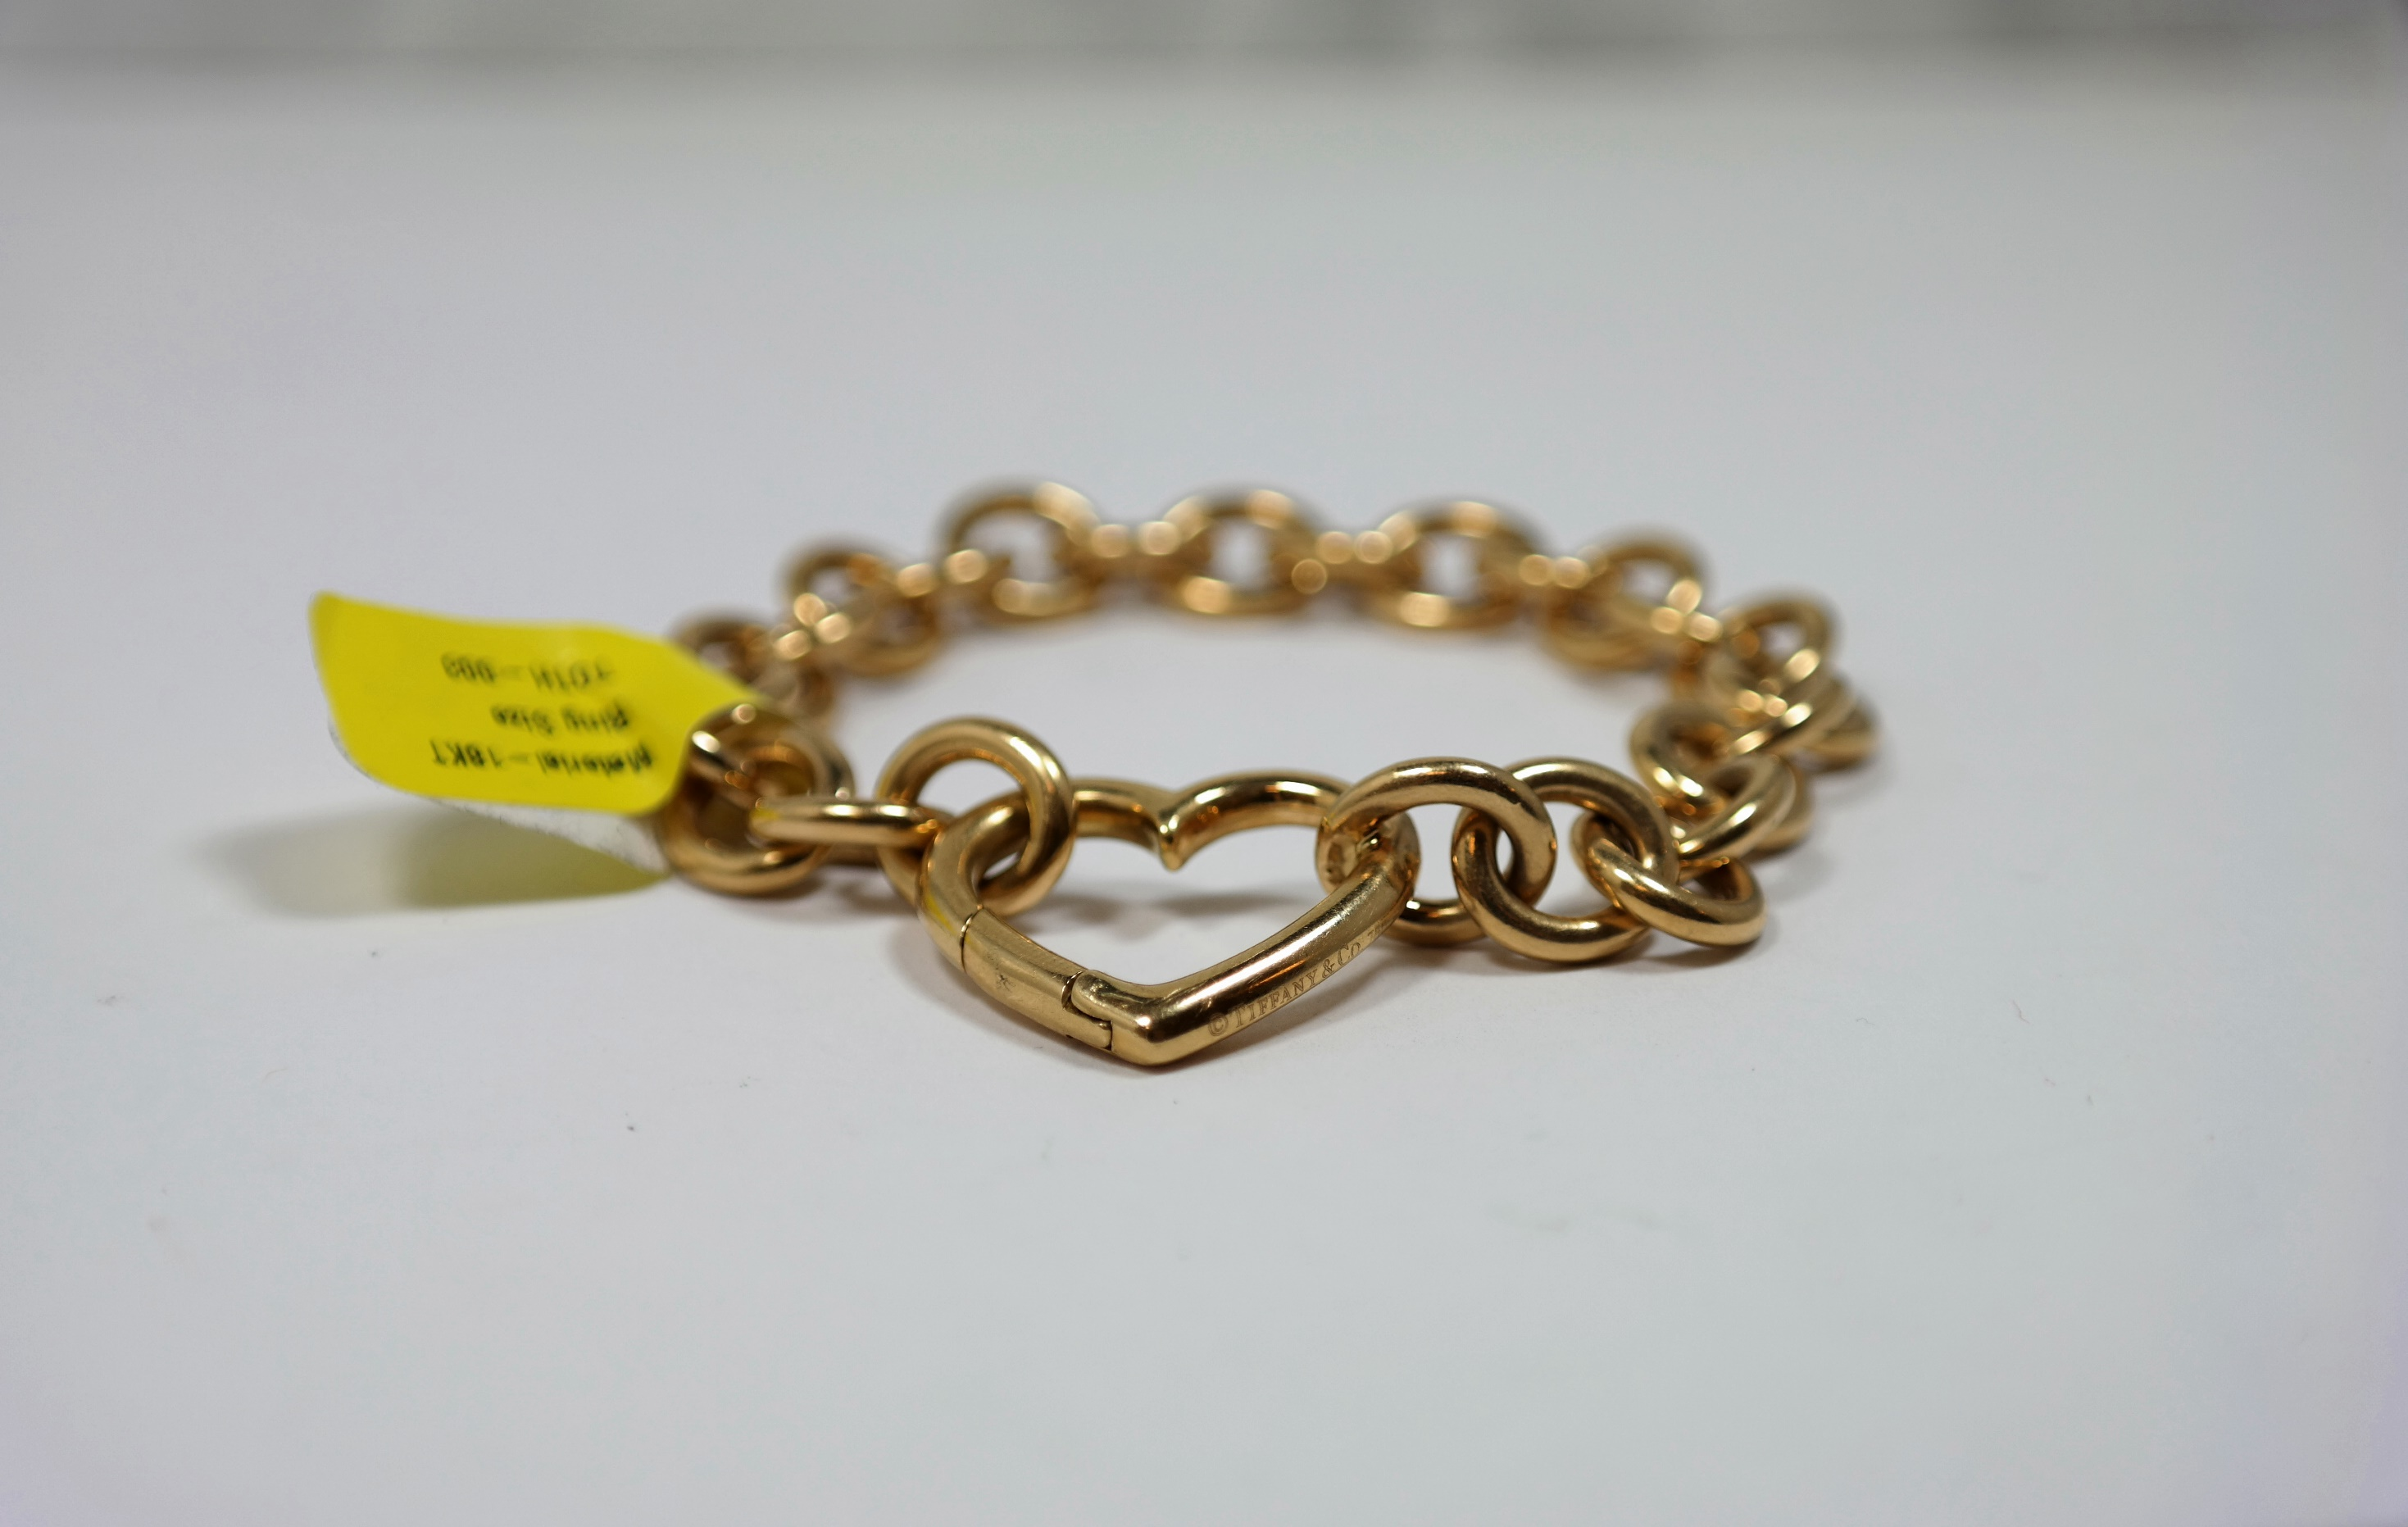 to grams with hallmarked each weight rose safety heart a vintage some bracelet link links curb chain linked length carat tom jewellery padlock pattern product gold large